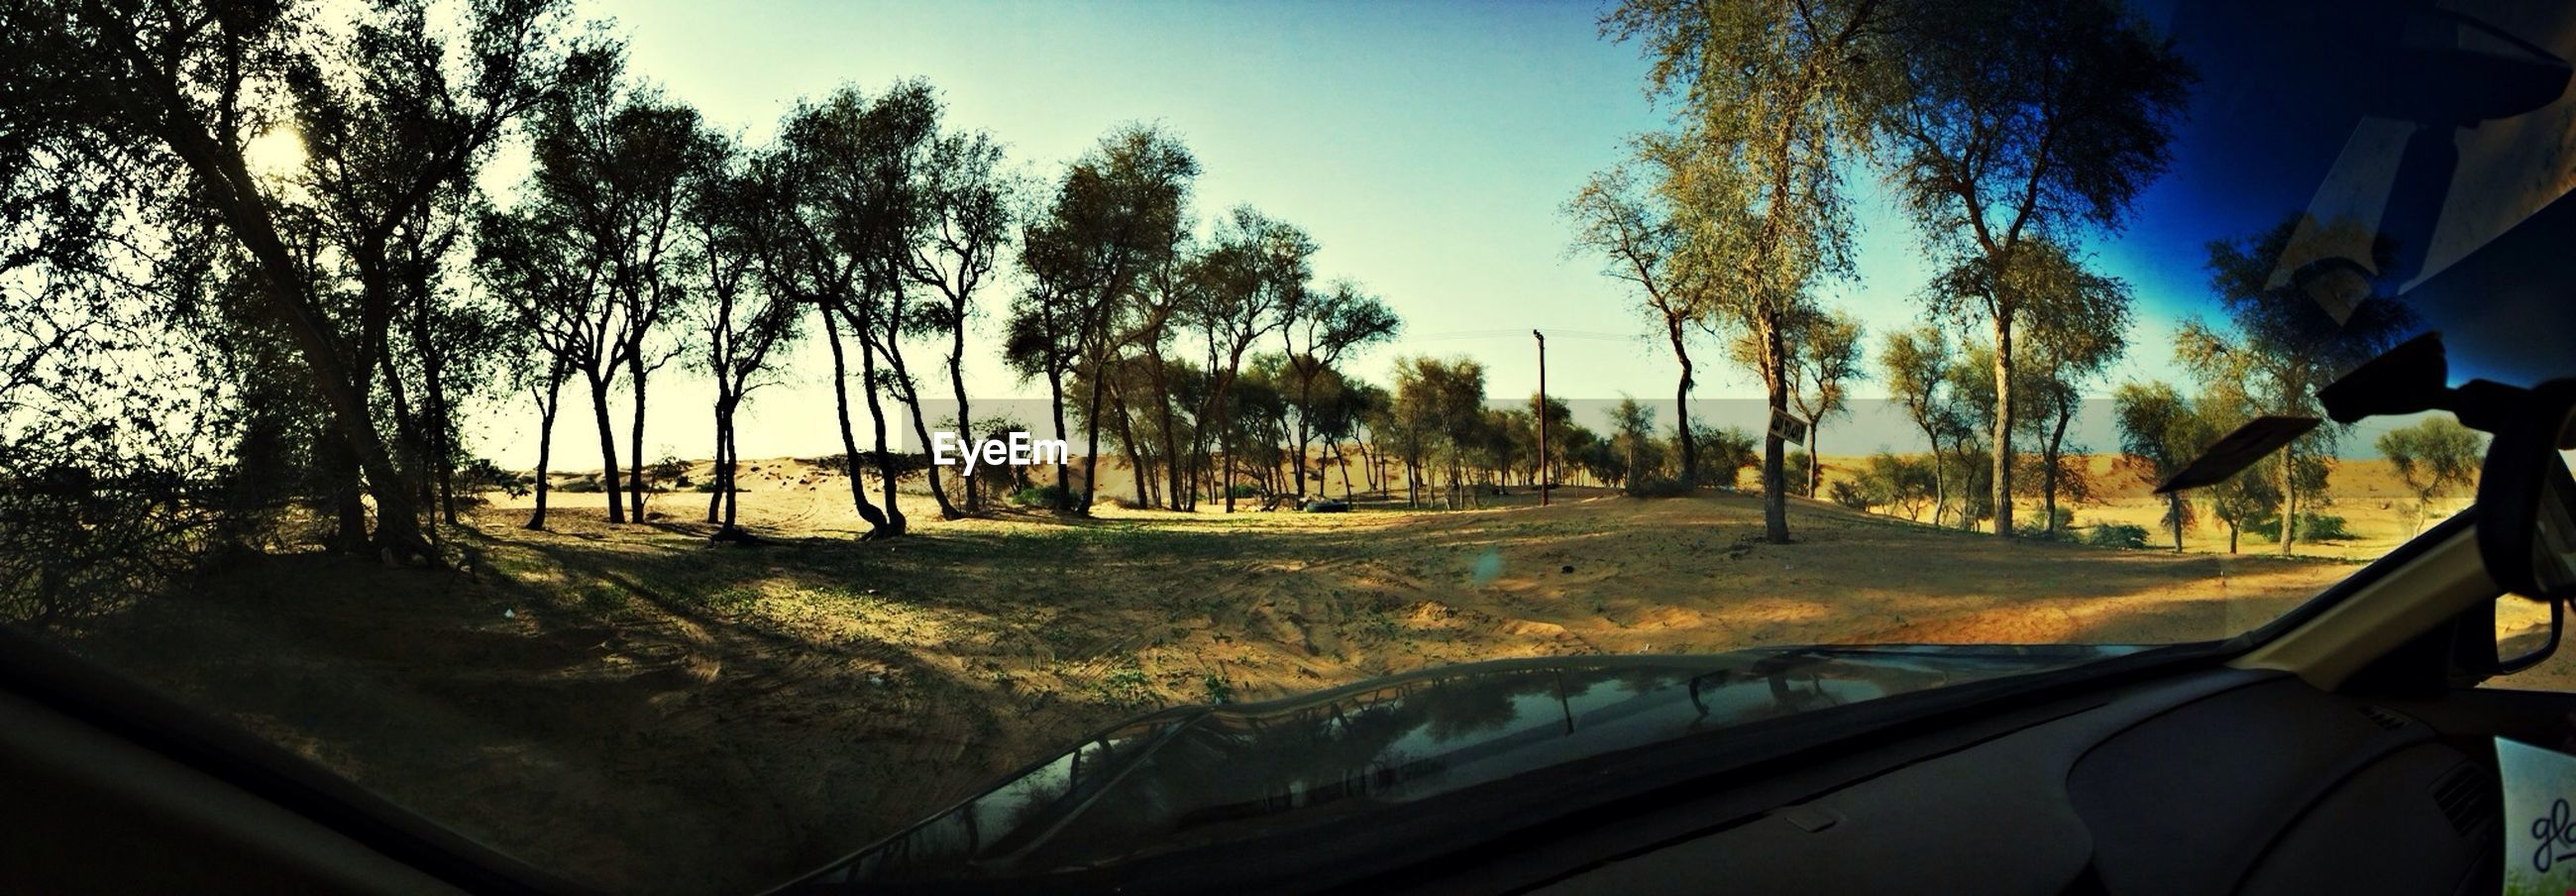 Scenic view of trees on landscape viewed through windshield of car